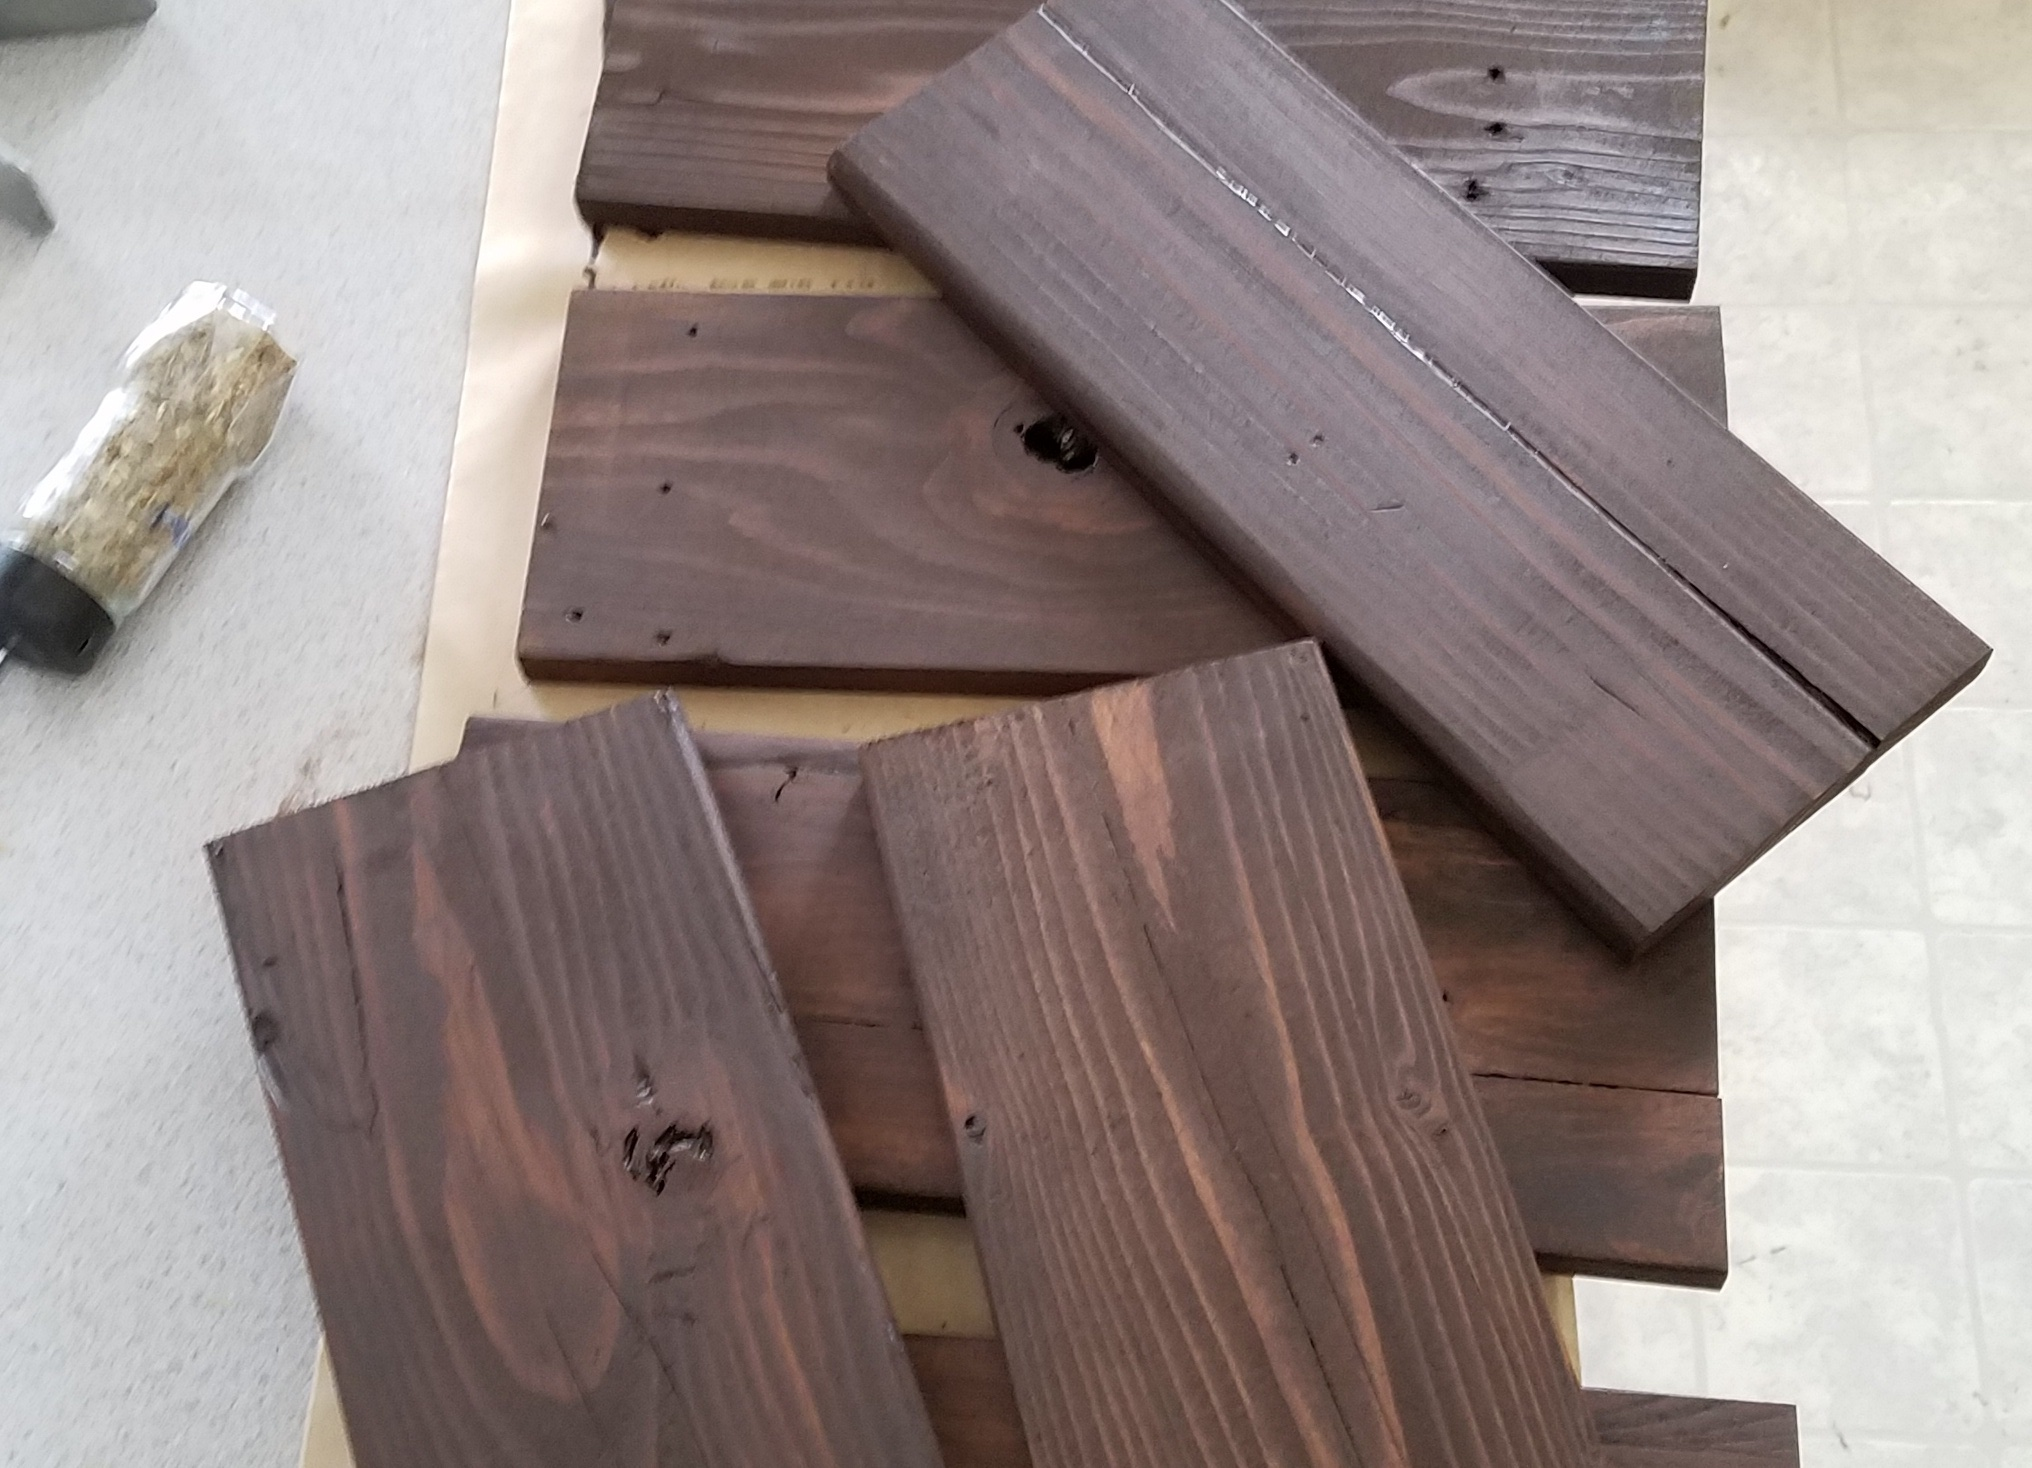 Reclaimed pallet wood pieces stained a dark walnut color